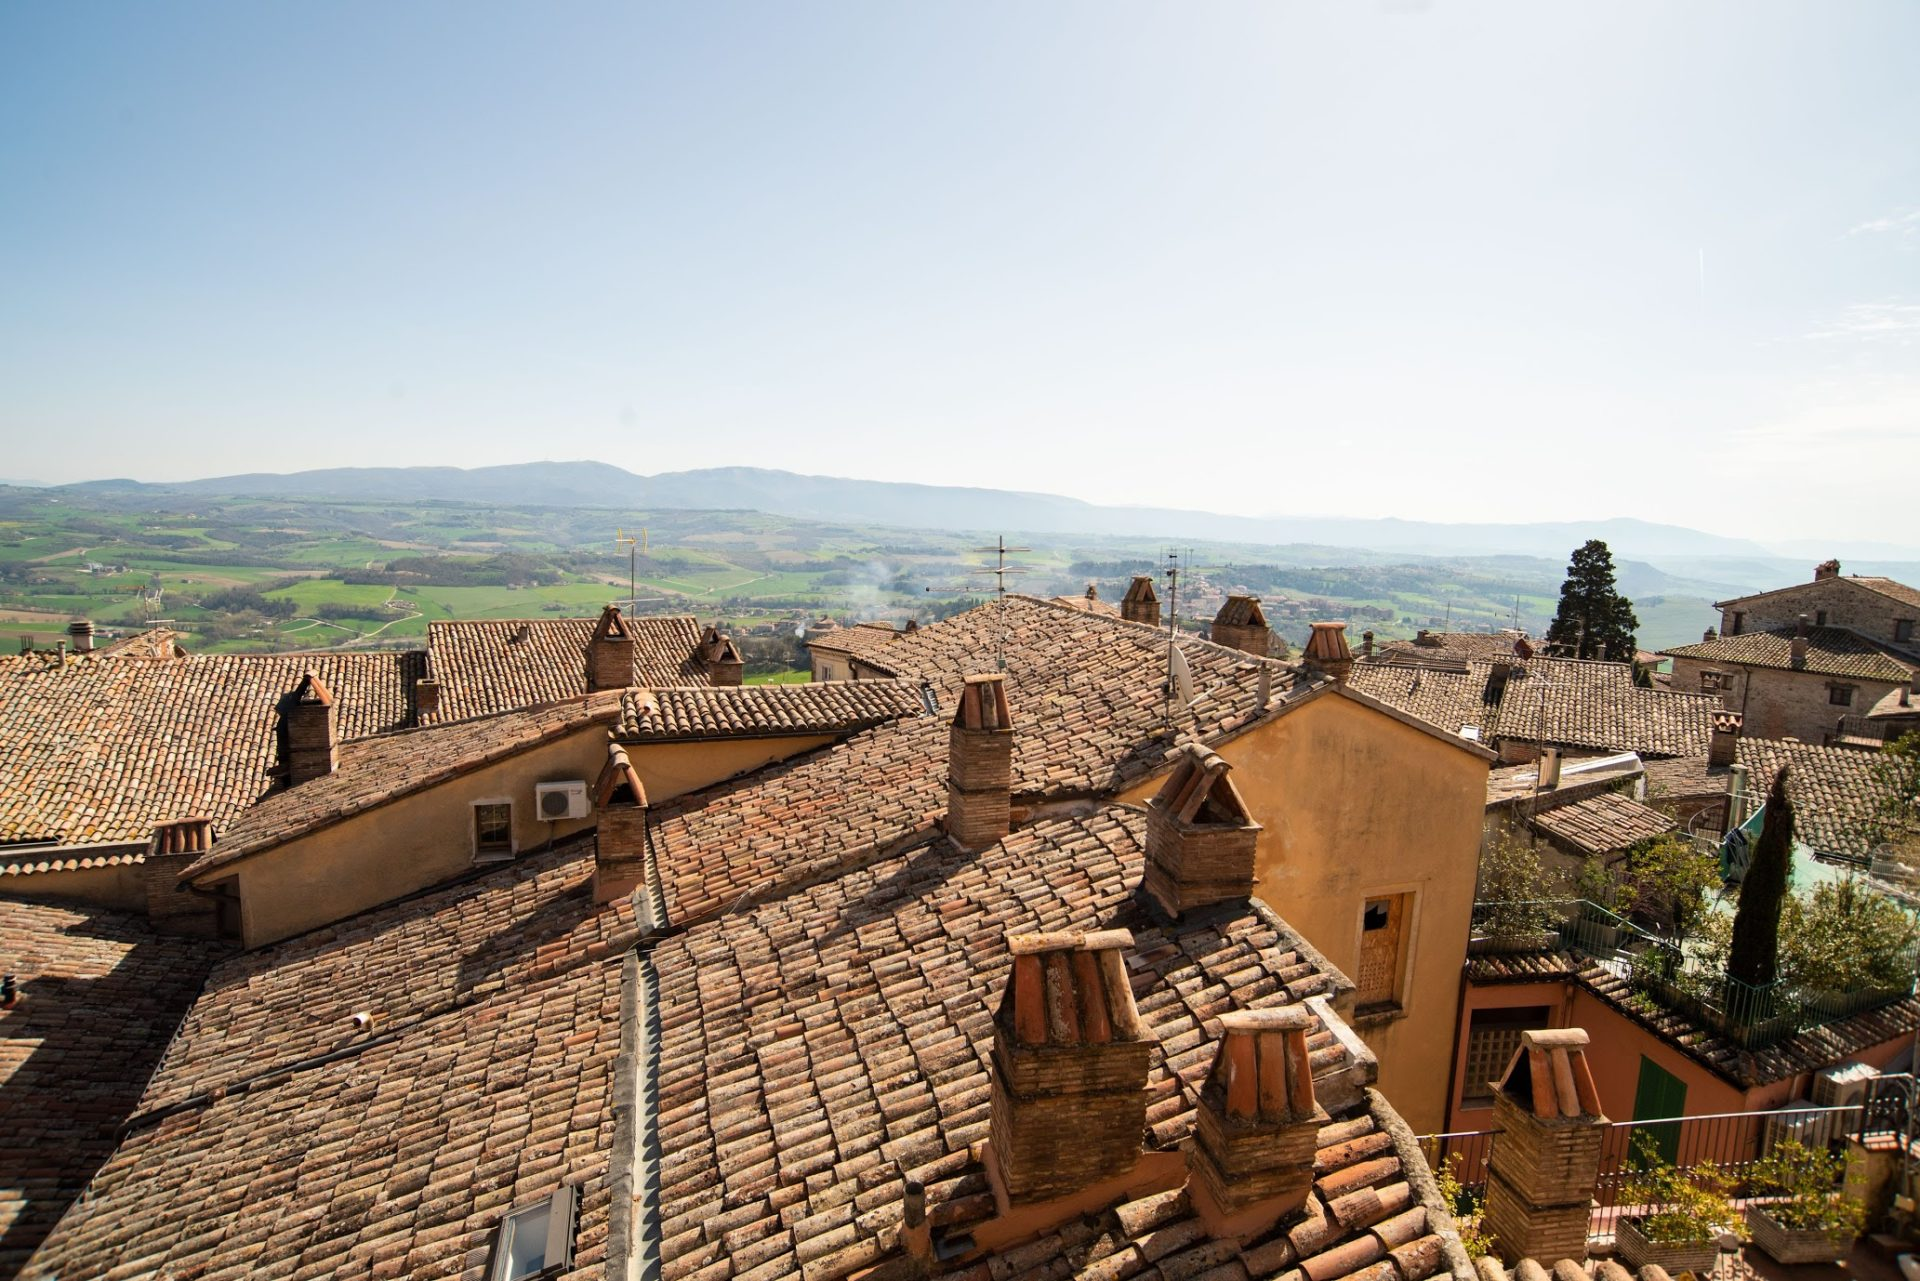 visita-todi-umbria - città ideal - Ideal city -Umbria sicura - Hotel Fonte Cesia - Umbria - safe -haven -